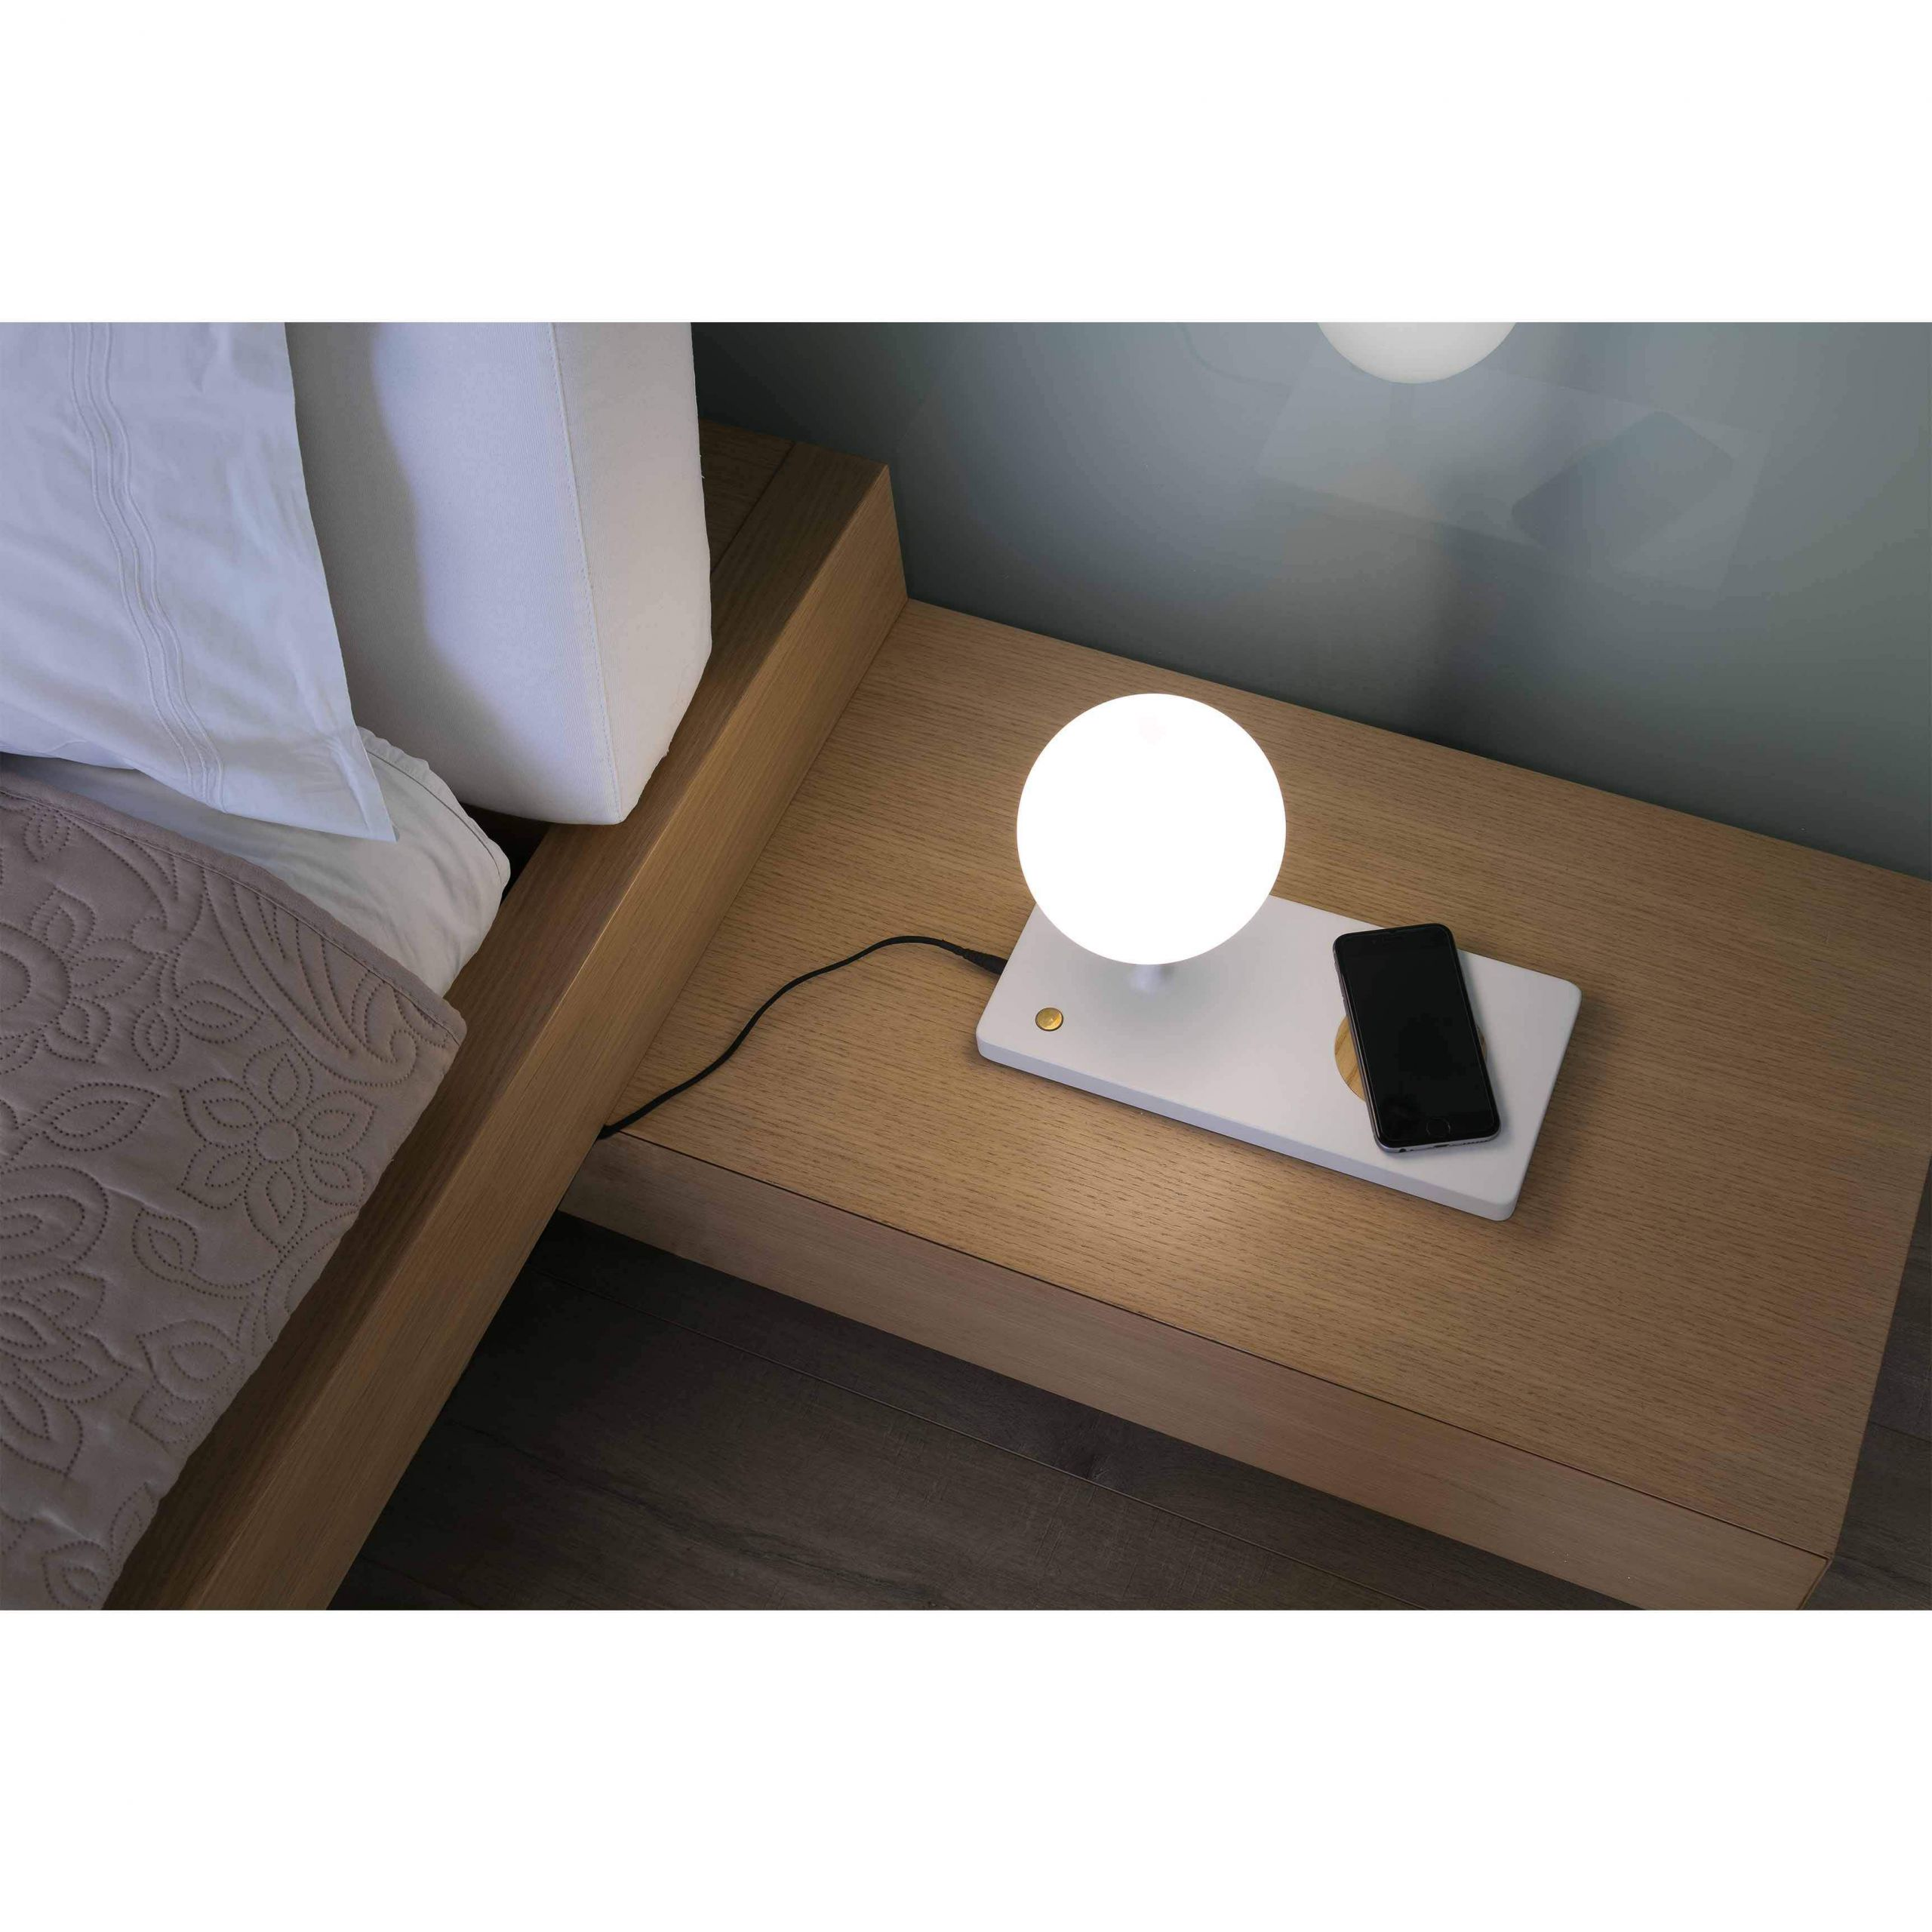 philips hue lampe wohnzimmer genial lampe table led best touch lampe de table led fr luminaires of philips hue lampe wohnzimmer